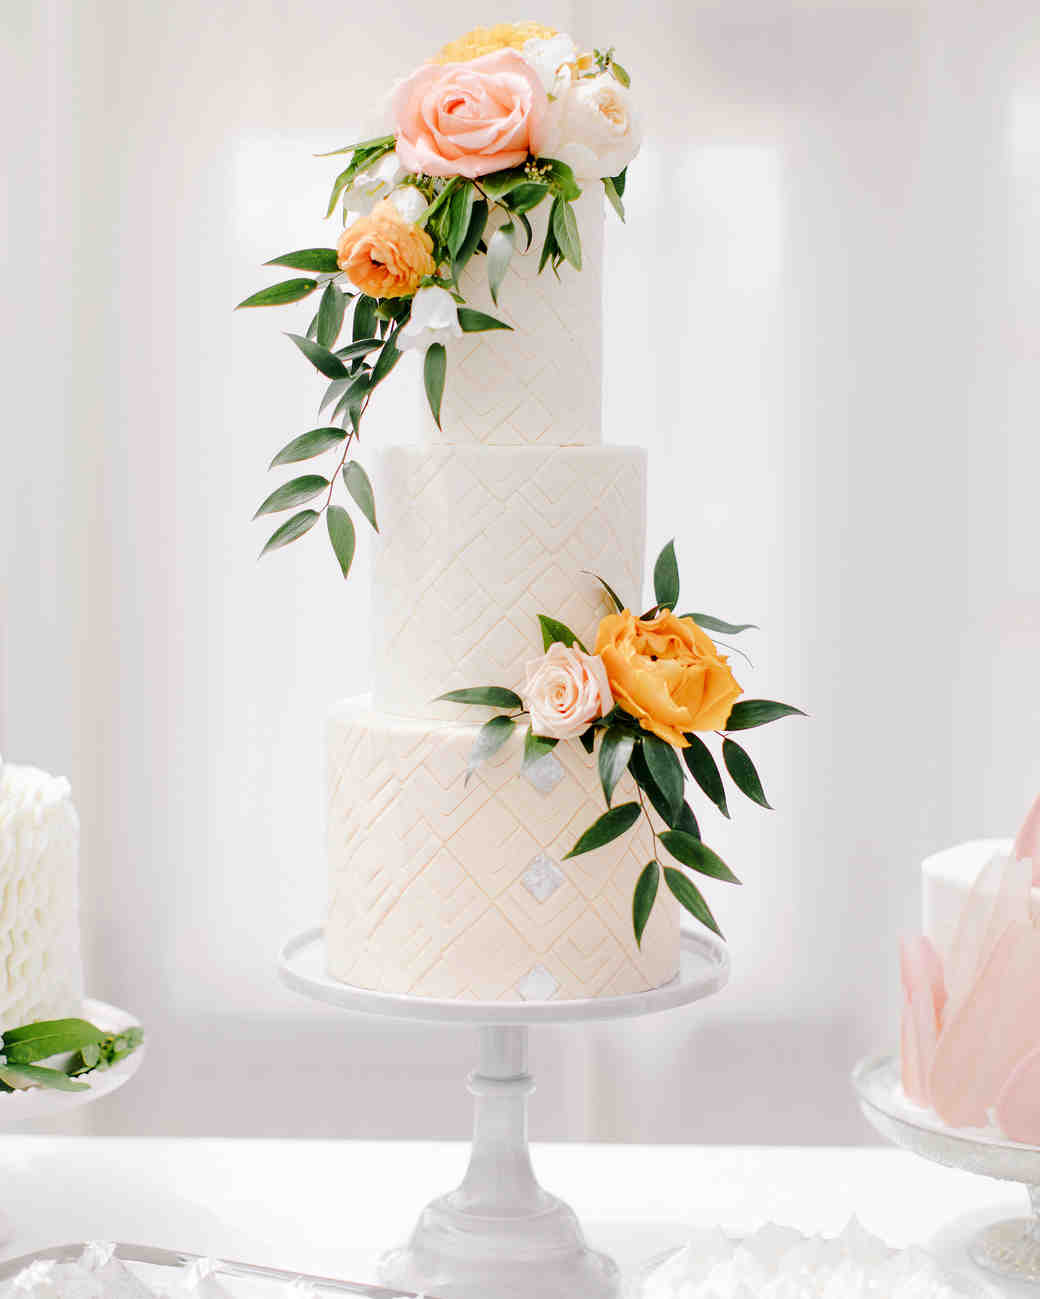 Cake Design For Marriage